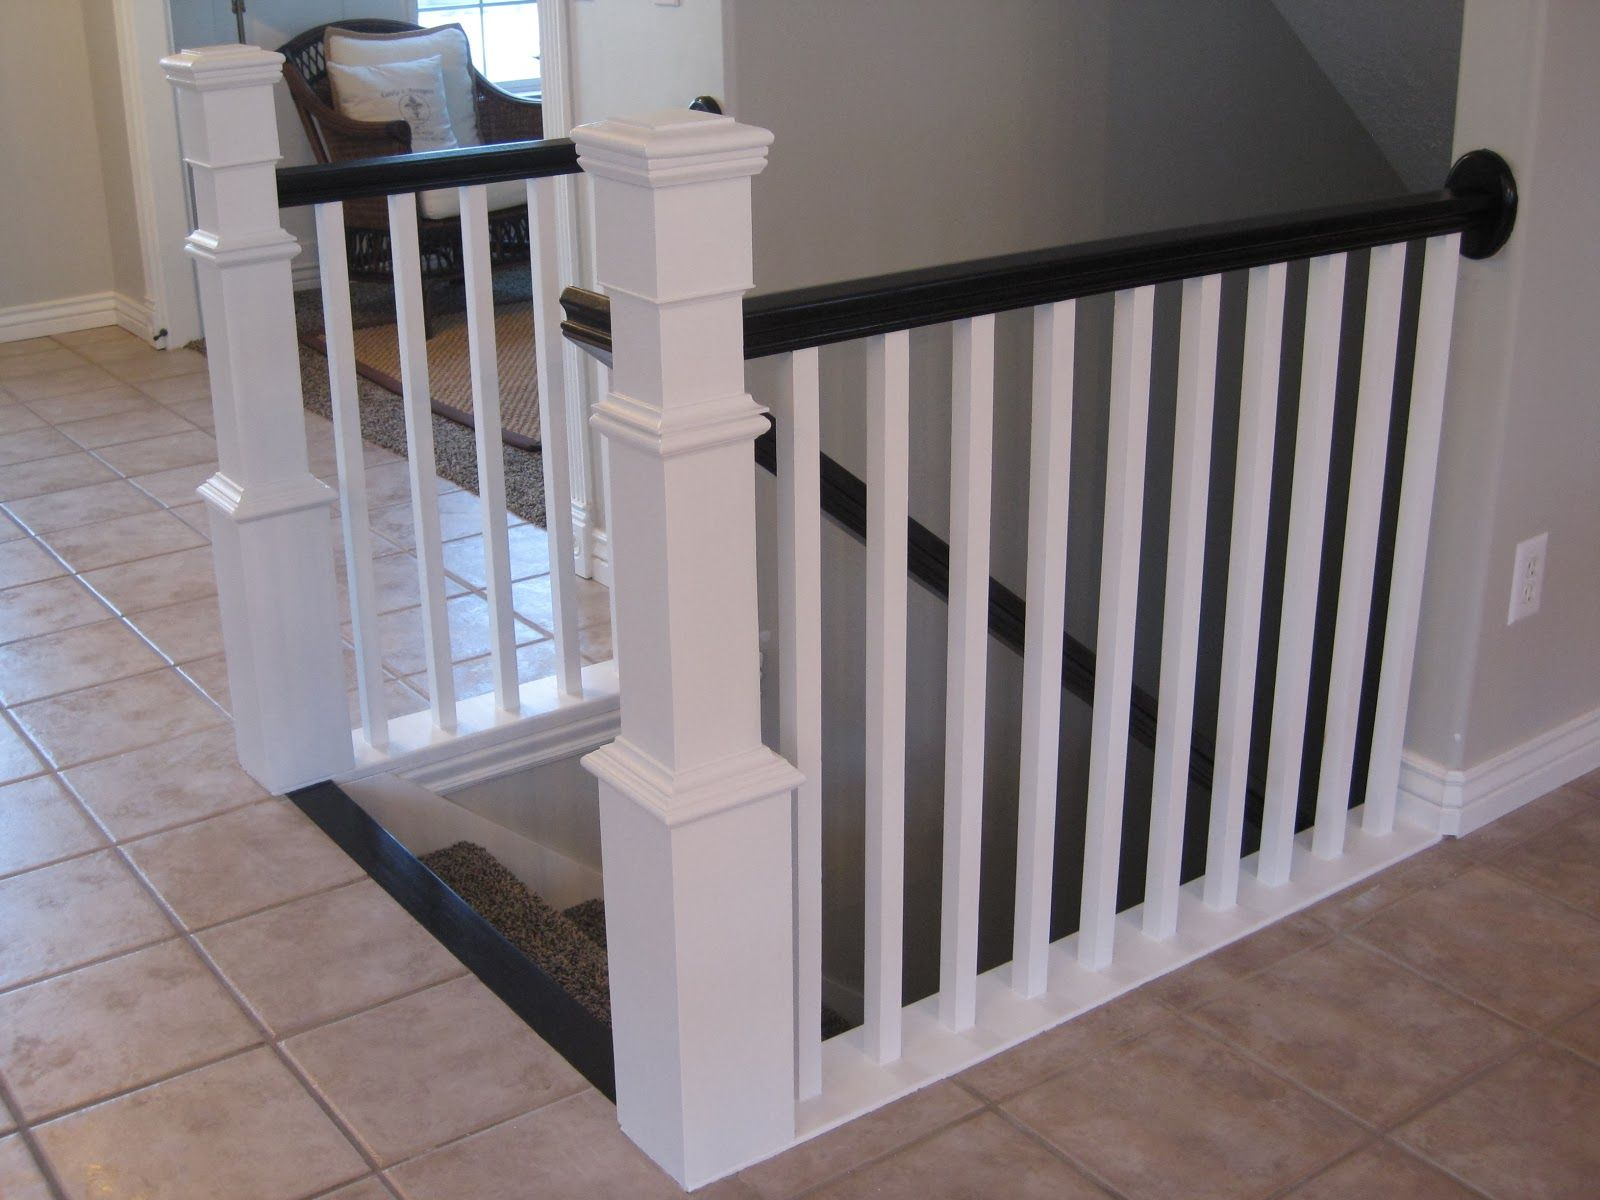 Stair Finishes Pictures 55 Recessed Flush Panel Box Newel Postnewel Poststair Post